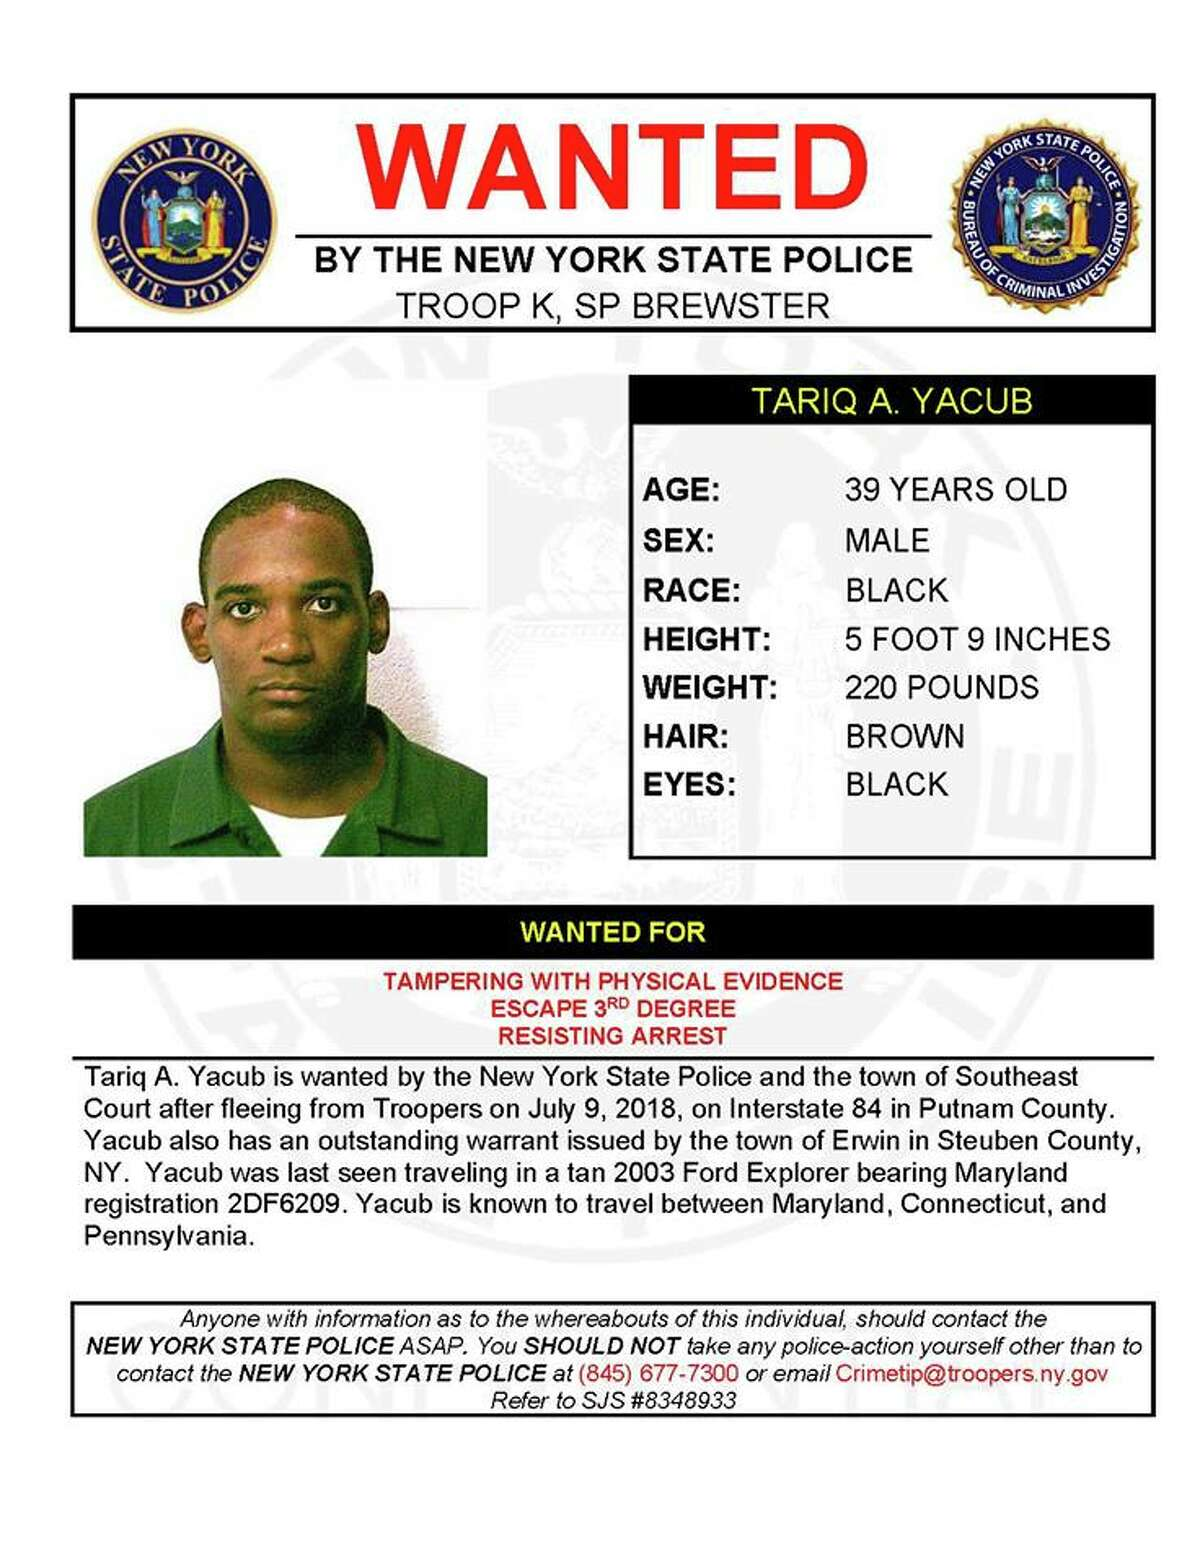 Tariq A. Yacub, 39, is wanted for tampering with physical evidence, escape and resisting arrest. Yacub is wanted by State Police and the town of Southeast Court after fleeing from troopers on July 9, 2018, on Interstate 84 in Putnam County. Yacub also has an outstanding warrant issued by the town of Erwin in Steuben County. He was last seen in a tan 2003 Ford Explorer with Maryland license 2DF6209. Yacub is known to travel among Maryland, Connecticut and Pennsylvania.